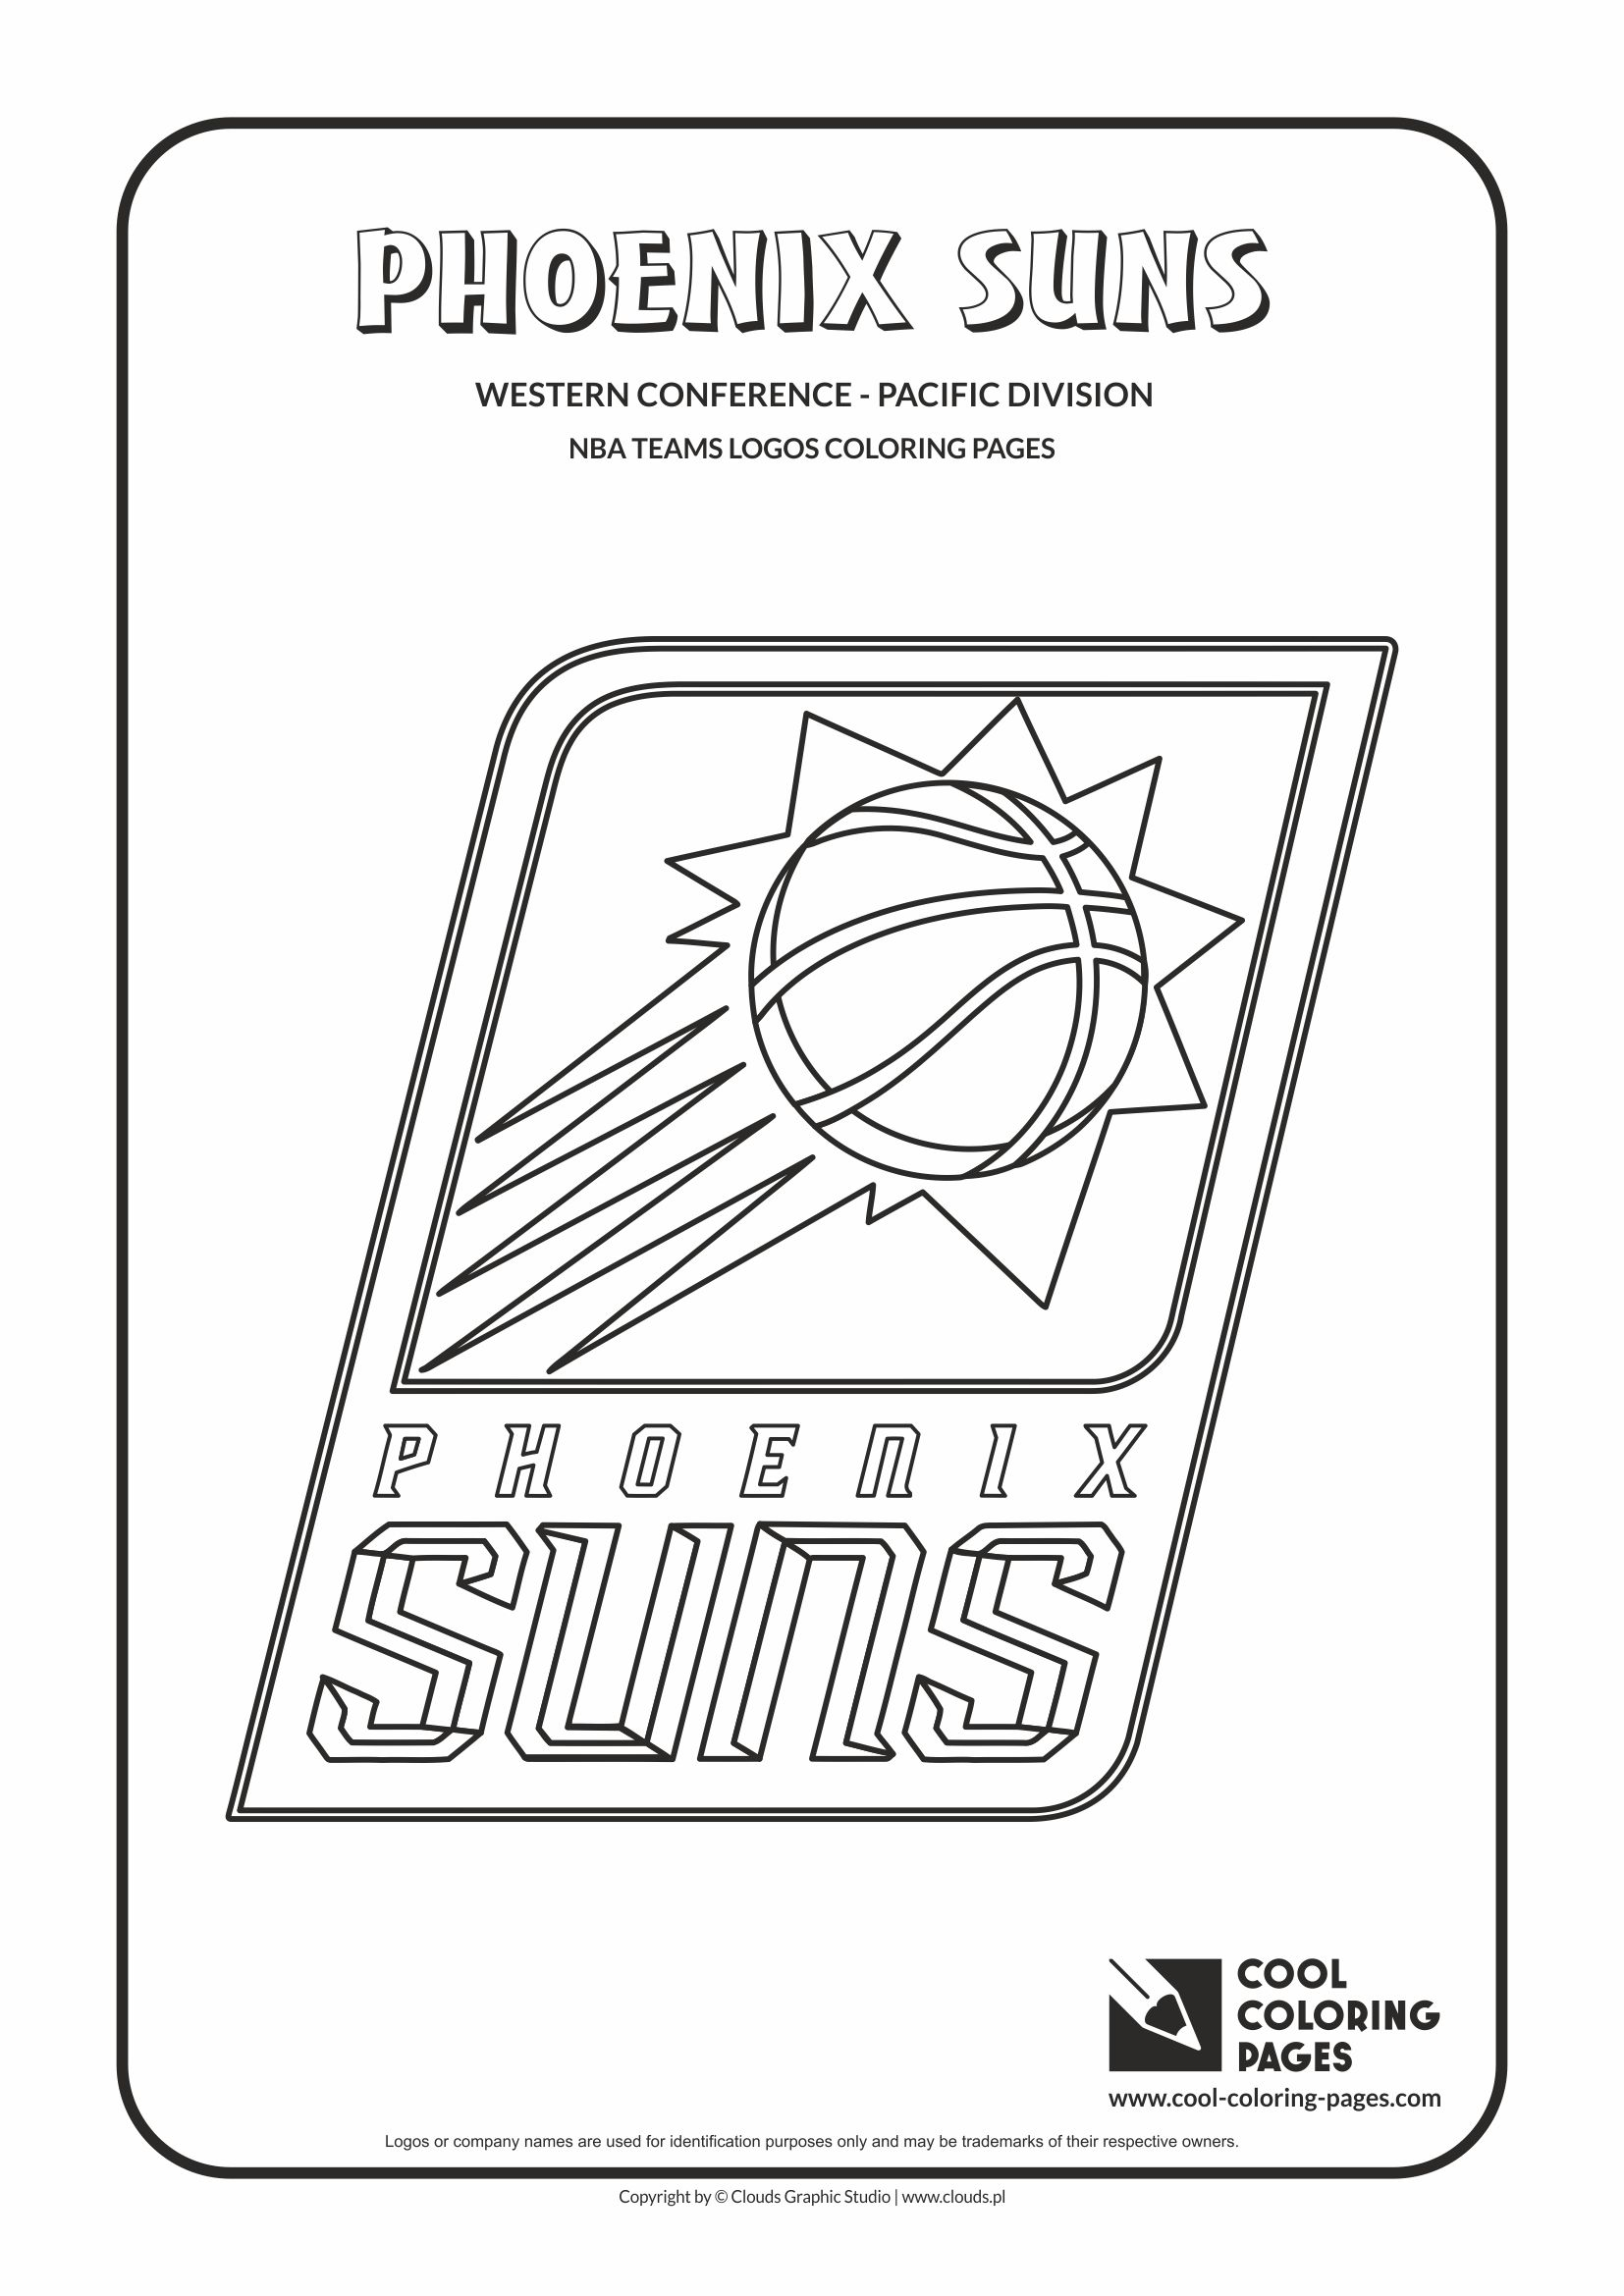 cool coloring pages nba basketball clubs logos western conference pacific division phoenix